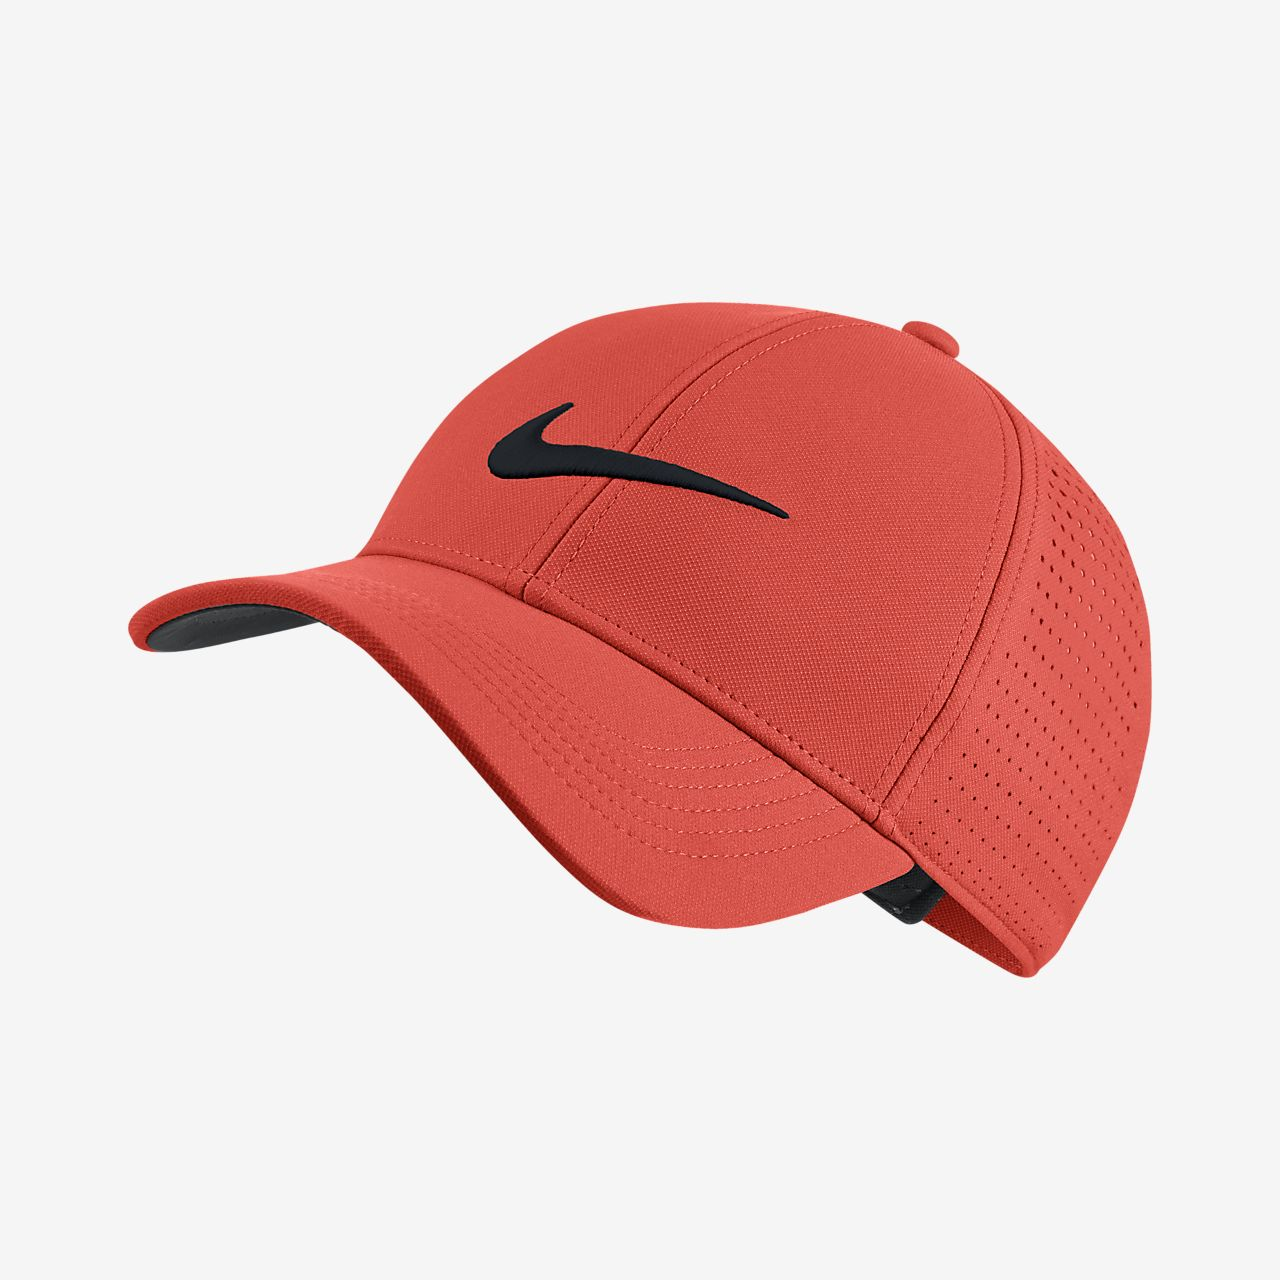 4afc5c150e2 Nike Legacy 91 Perforated Adjustable Golf Hat. Nike.com IN